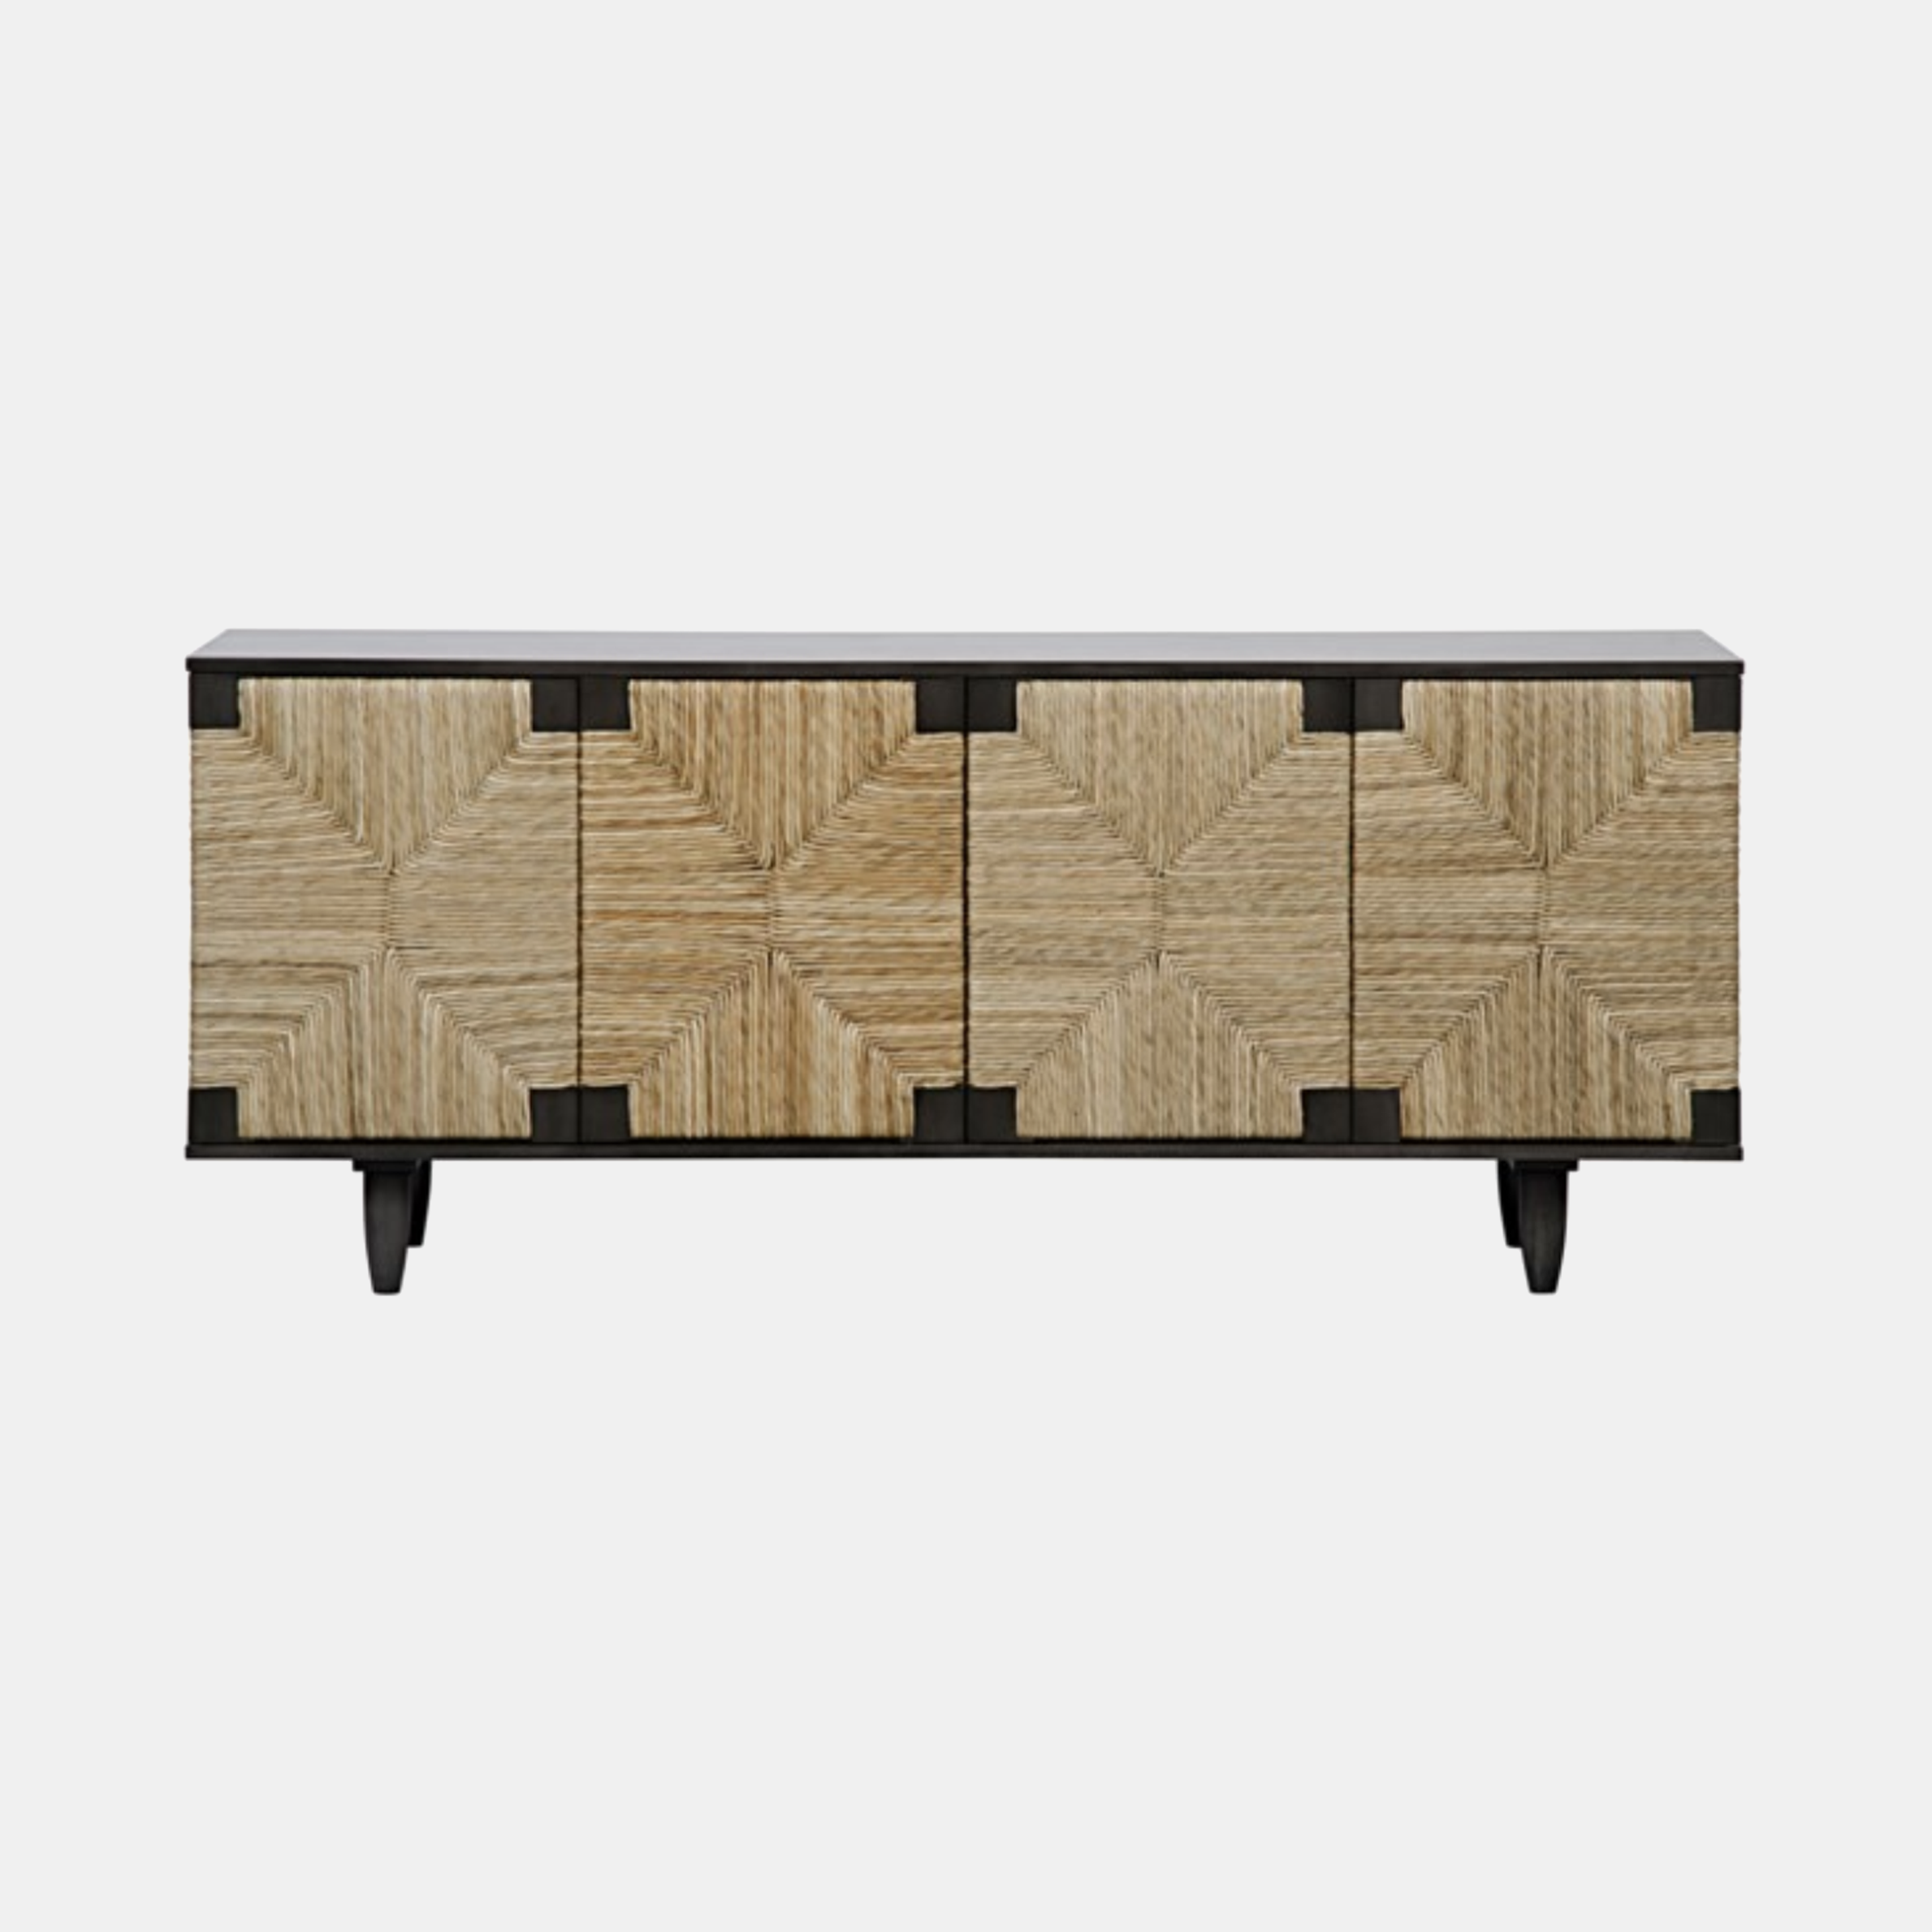 "Brook 4 Door Sideboard  76.5""l x 22.5""d x 32""h Available in pale (shown) or teak. Also available as 2-door 38""l x 22.5""d x 32.5""h. SKU23ONOR"